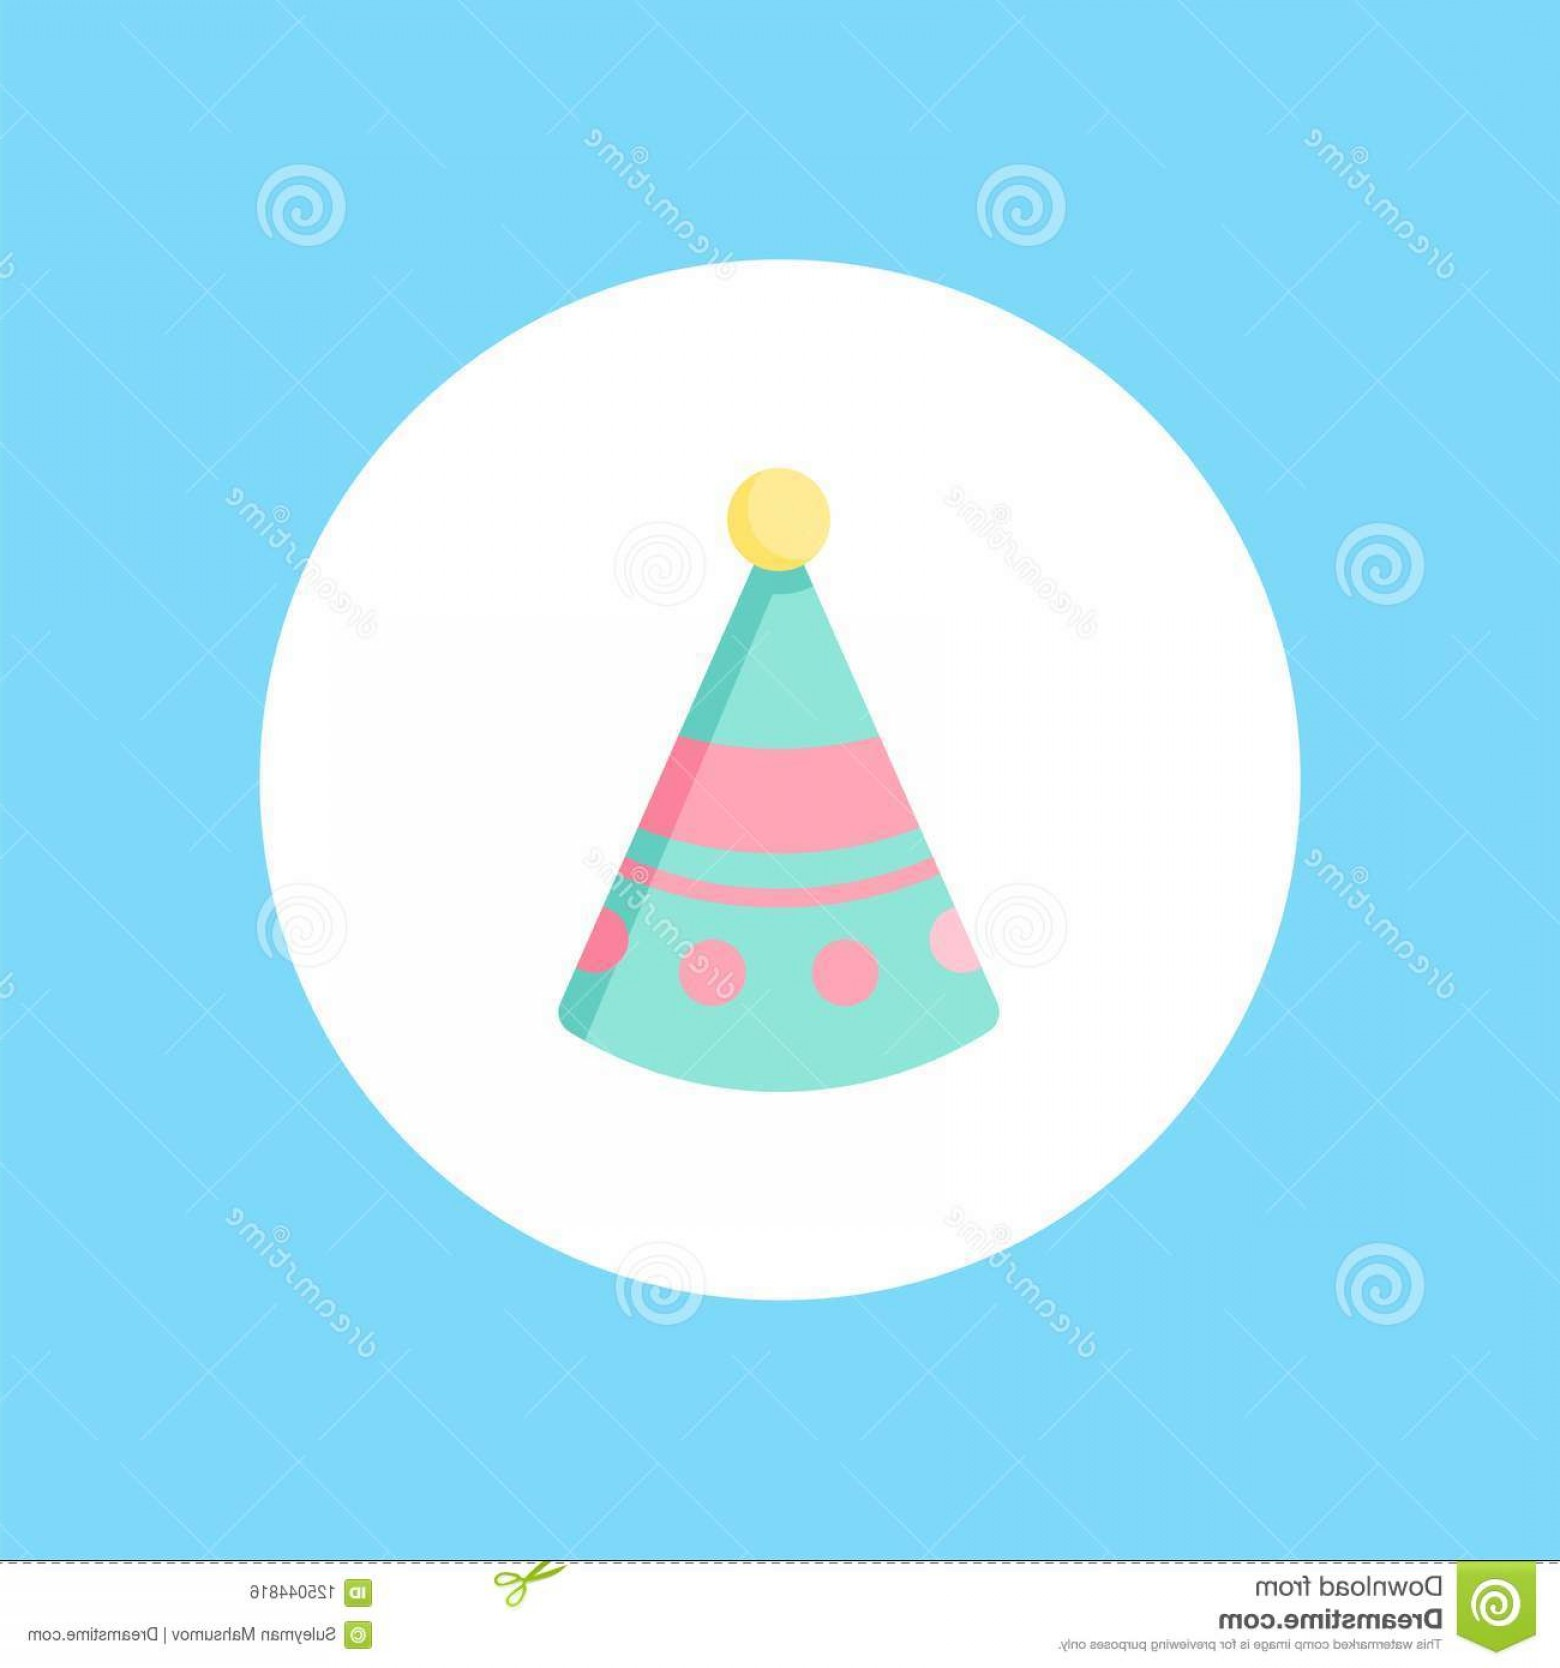 Teal Birthday Hat Vector: Isolated Birthday Hat Icon White Background Vector Illustration Birthday Hat Vector Icon Sign Symbol Image